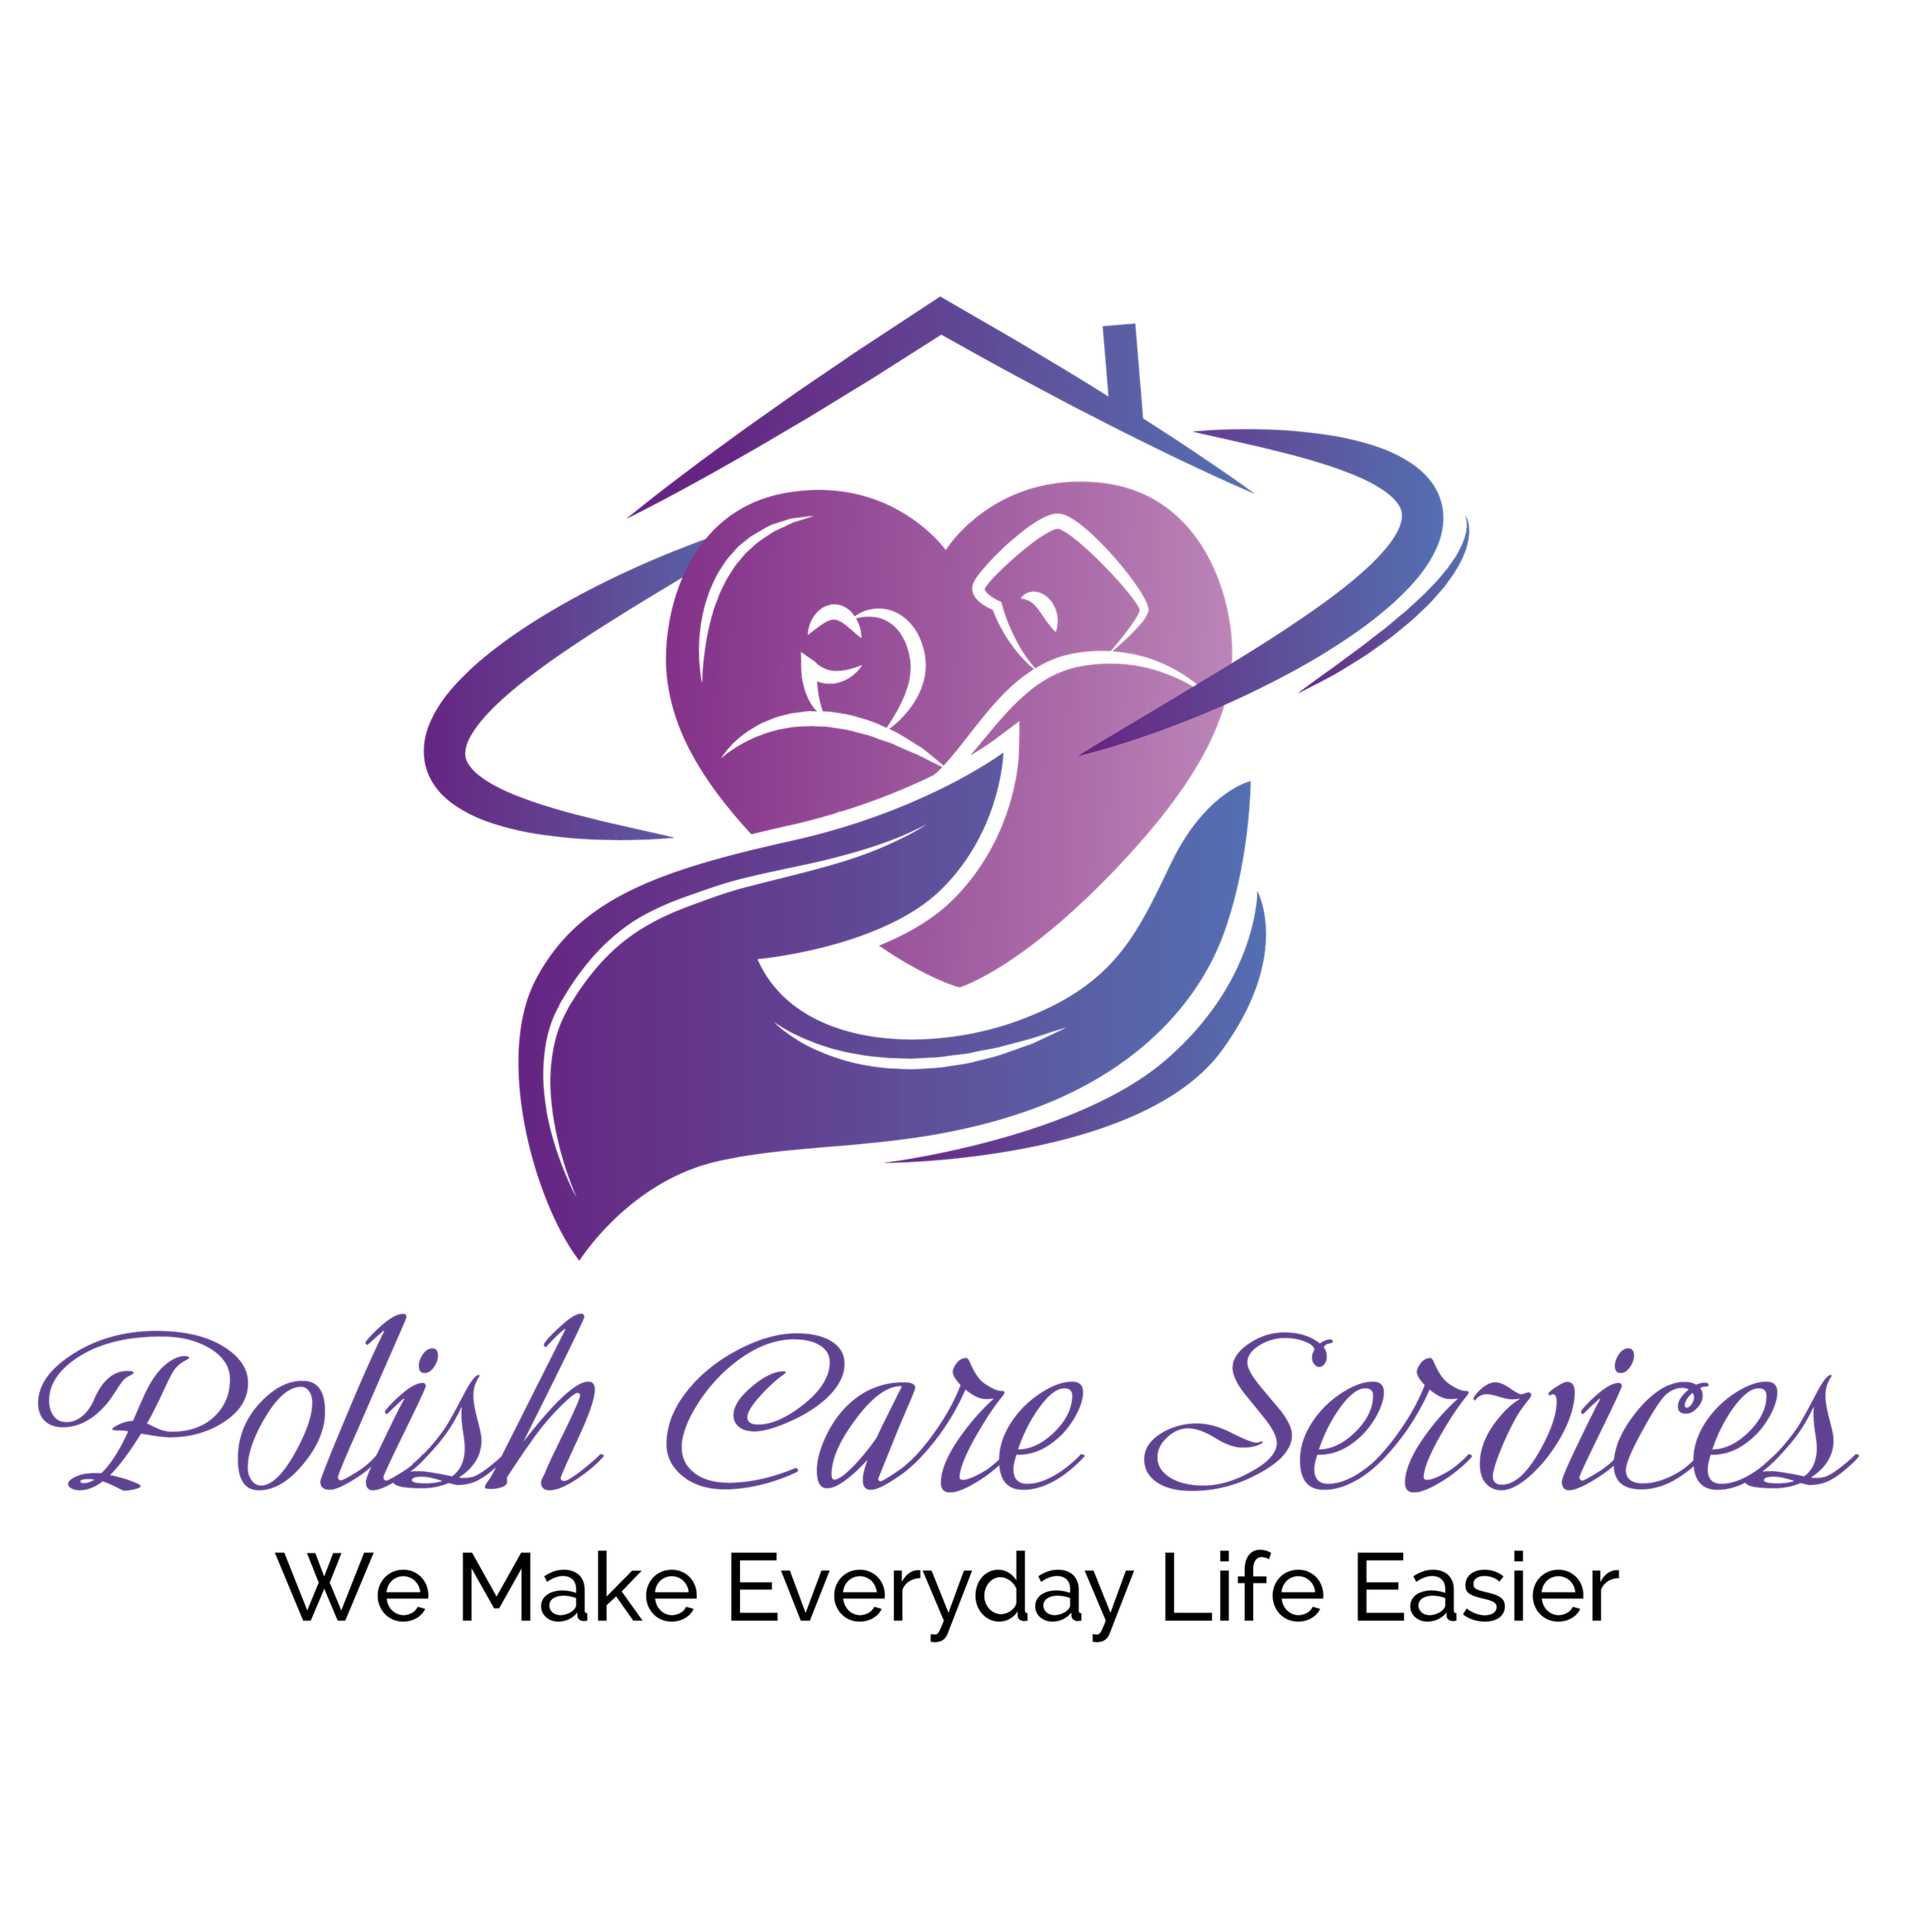 Polish Care Services